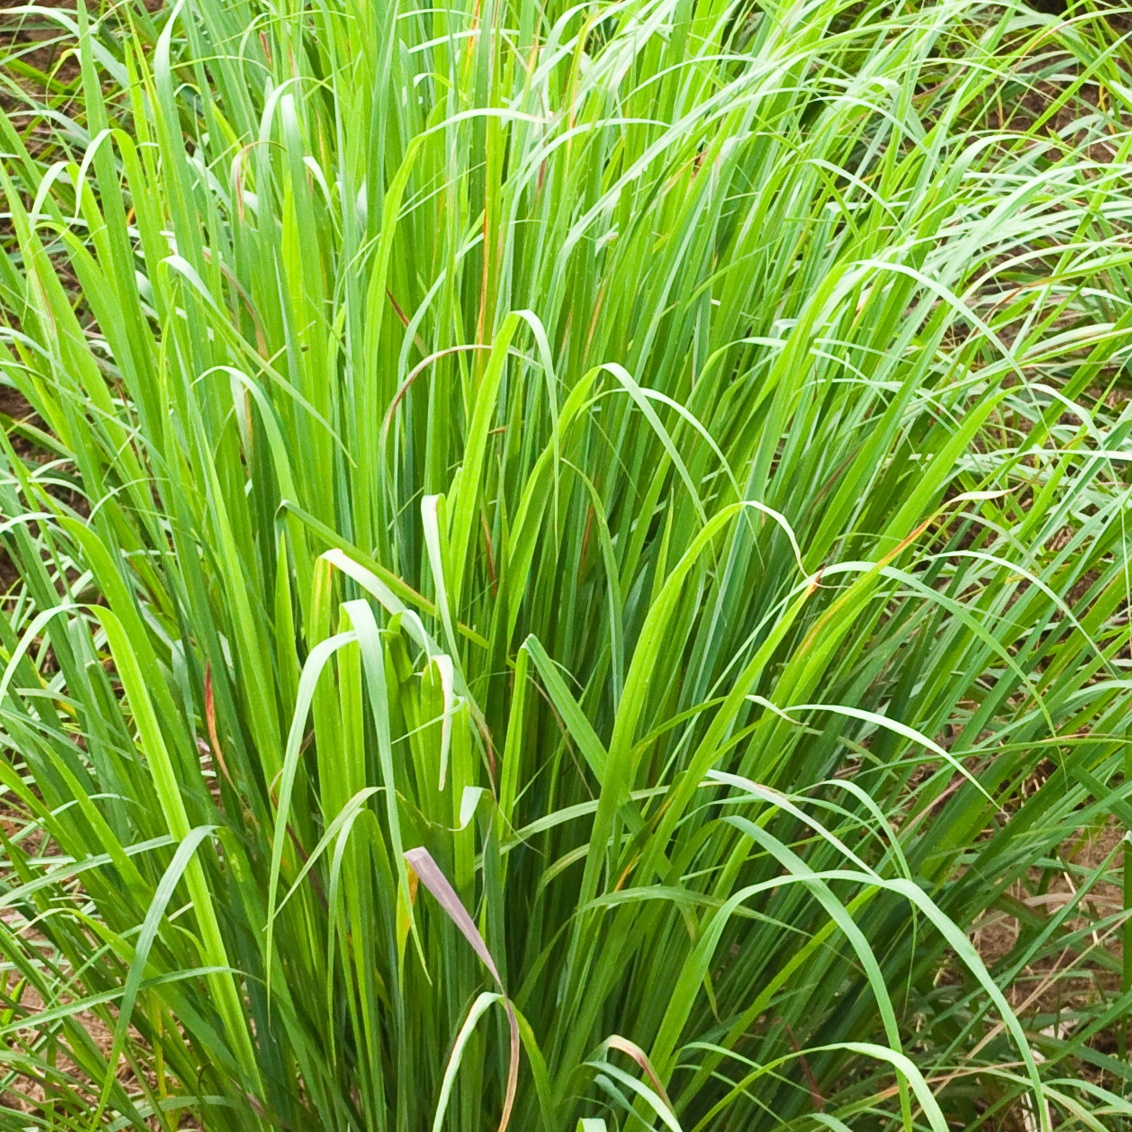 Lemon grass plant,North East of Thailand.